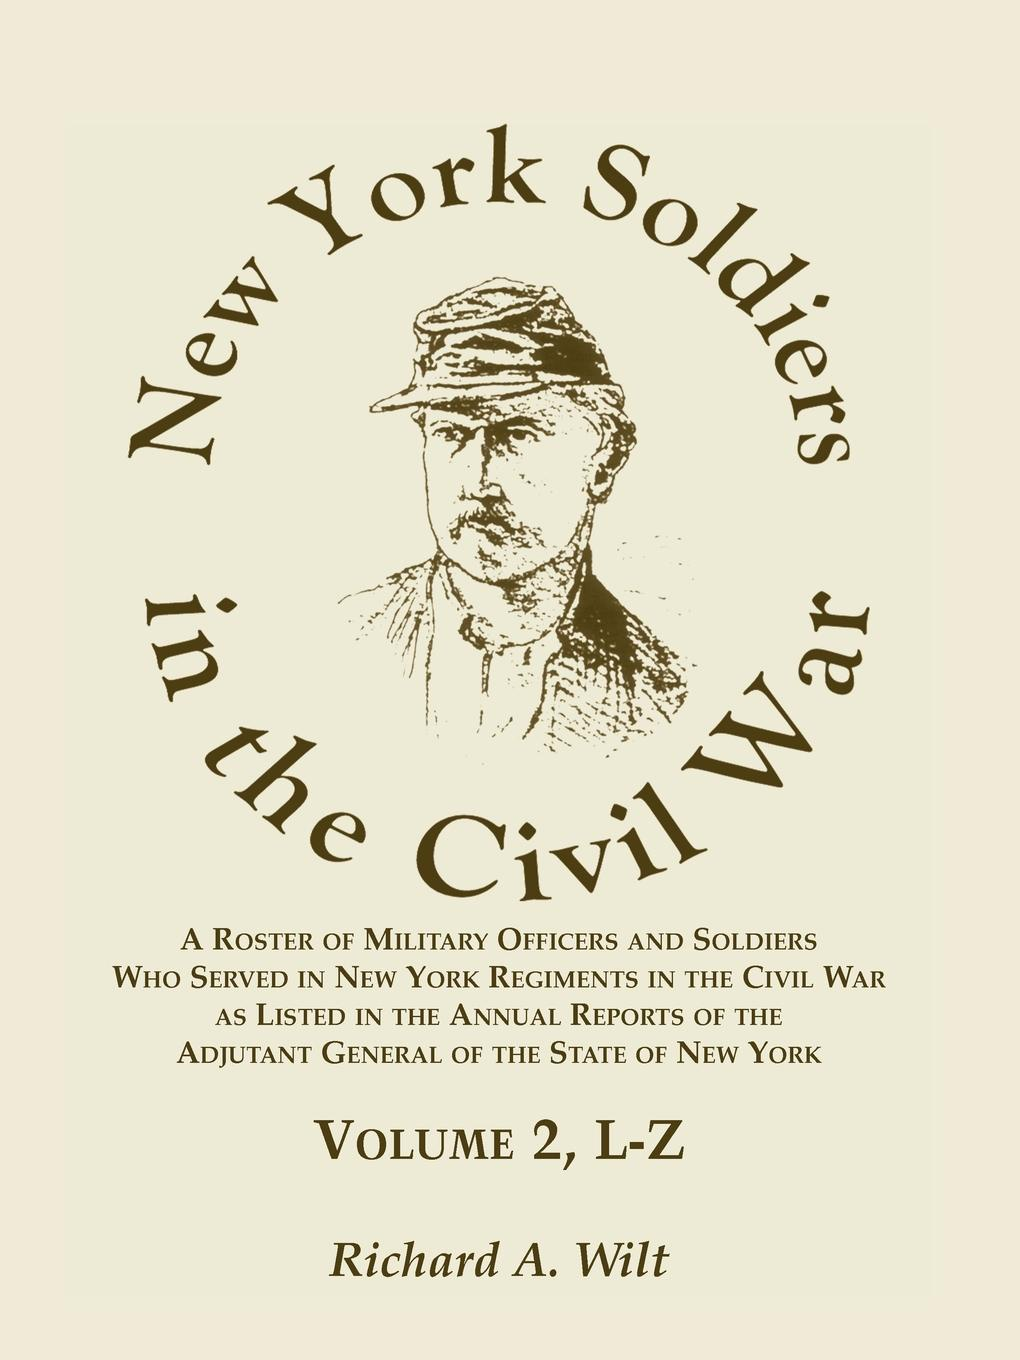 Richard A Wilt New York Soldiers in the Civil War, A Roster of Military Officers and Soldiers Who Served in New York Regiments in the Civil War as Listed in the Annual Reports of the Adjutant General of the State of New York, Volume 2 L-Z peter godwin the three of u s a new life in new york